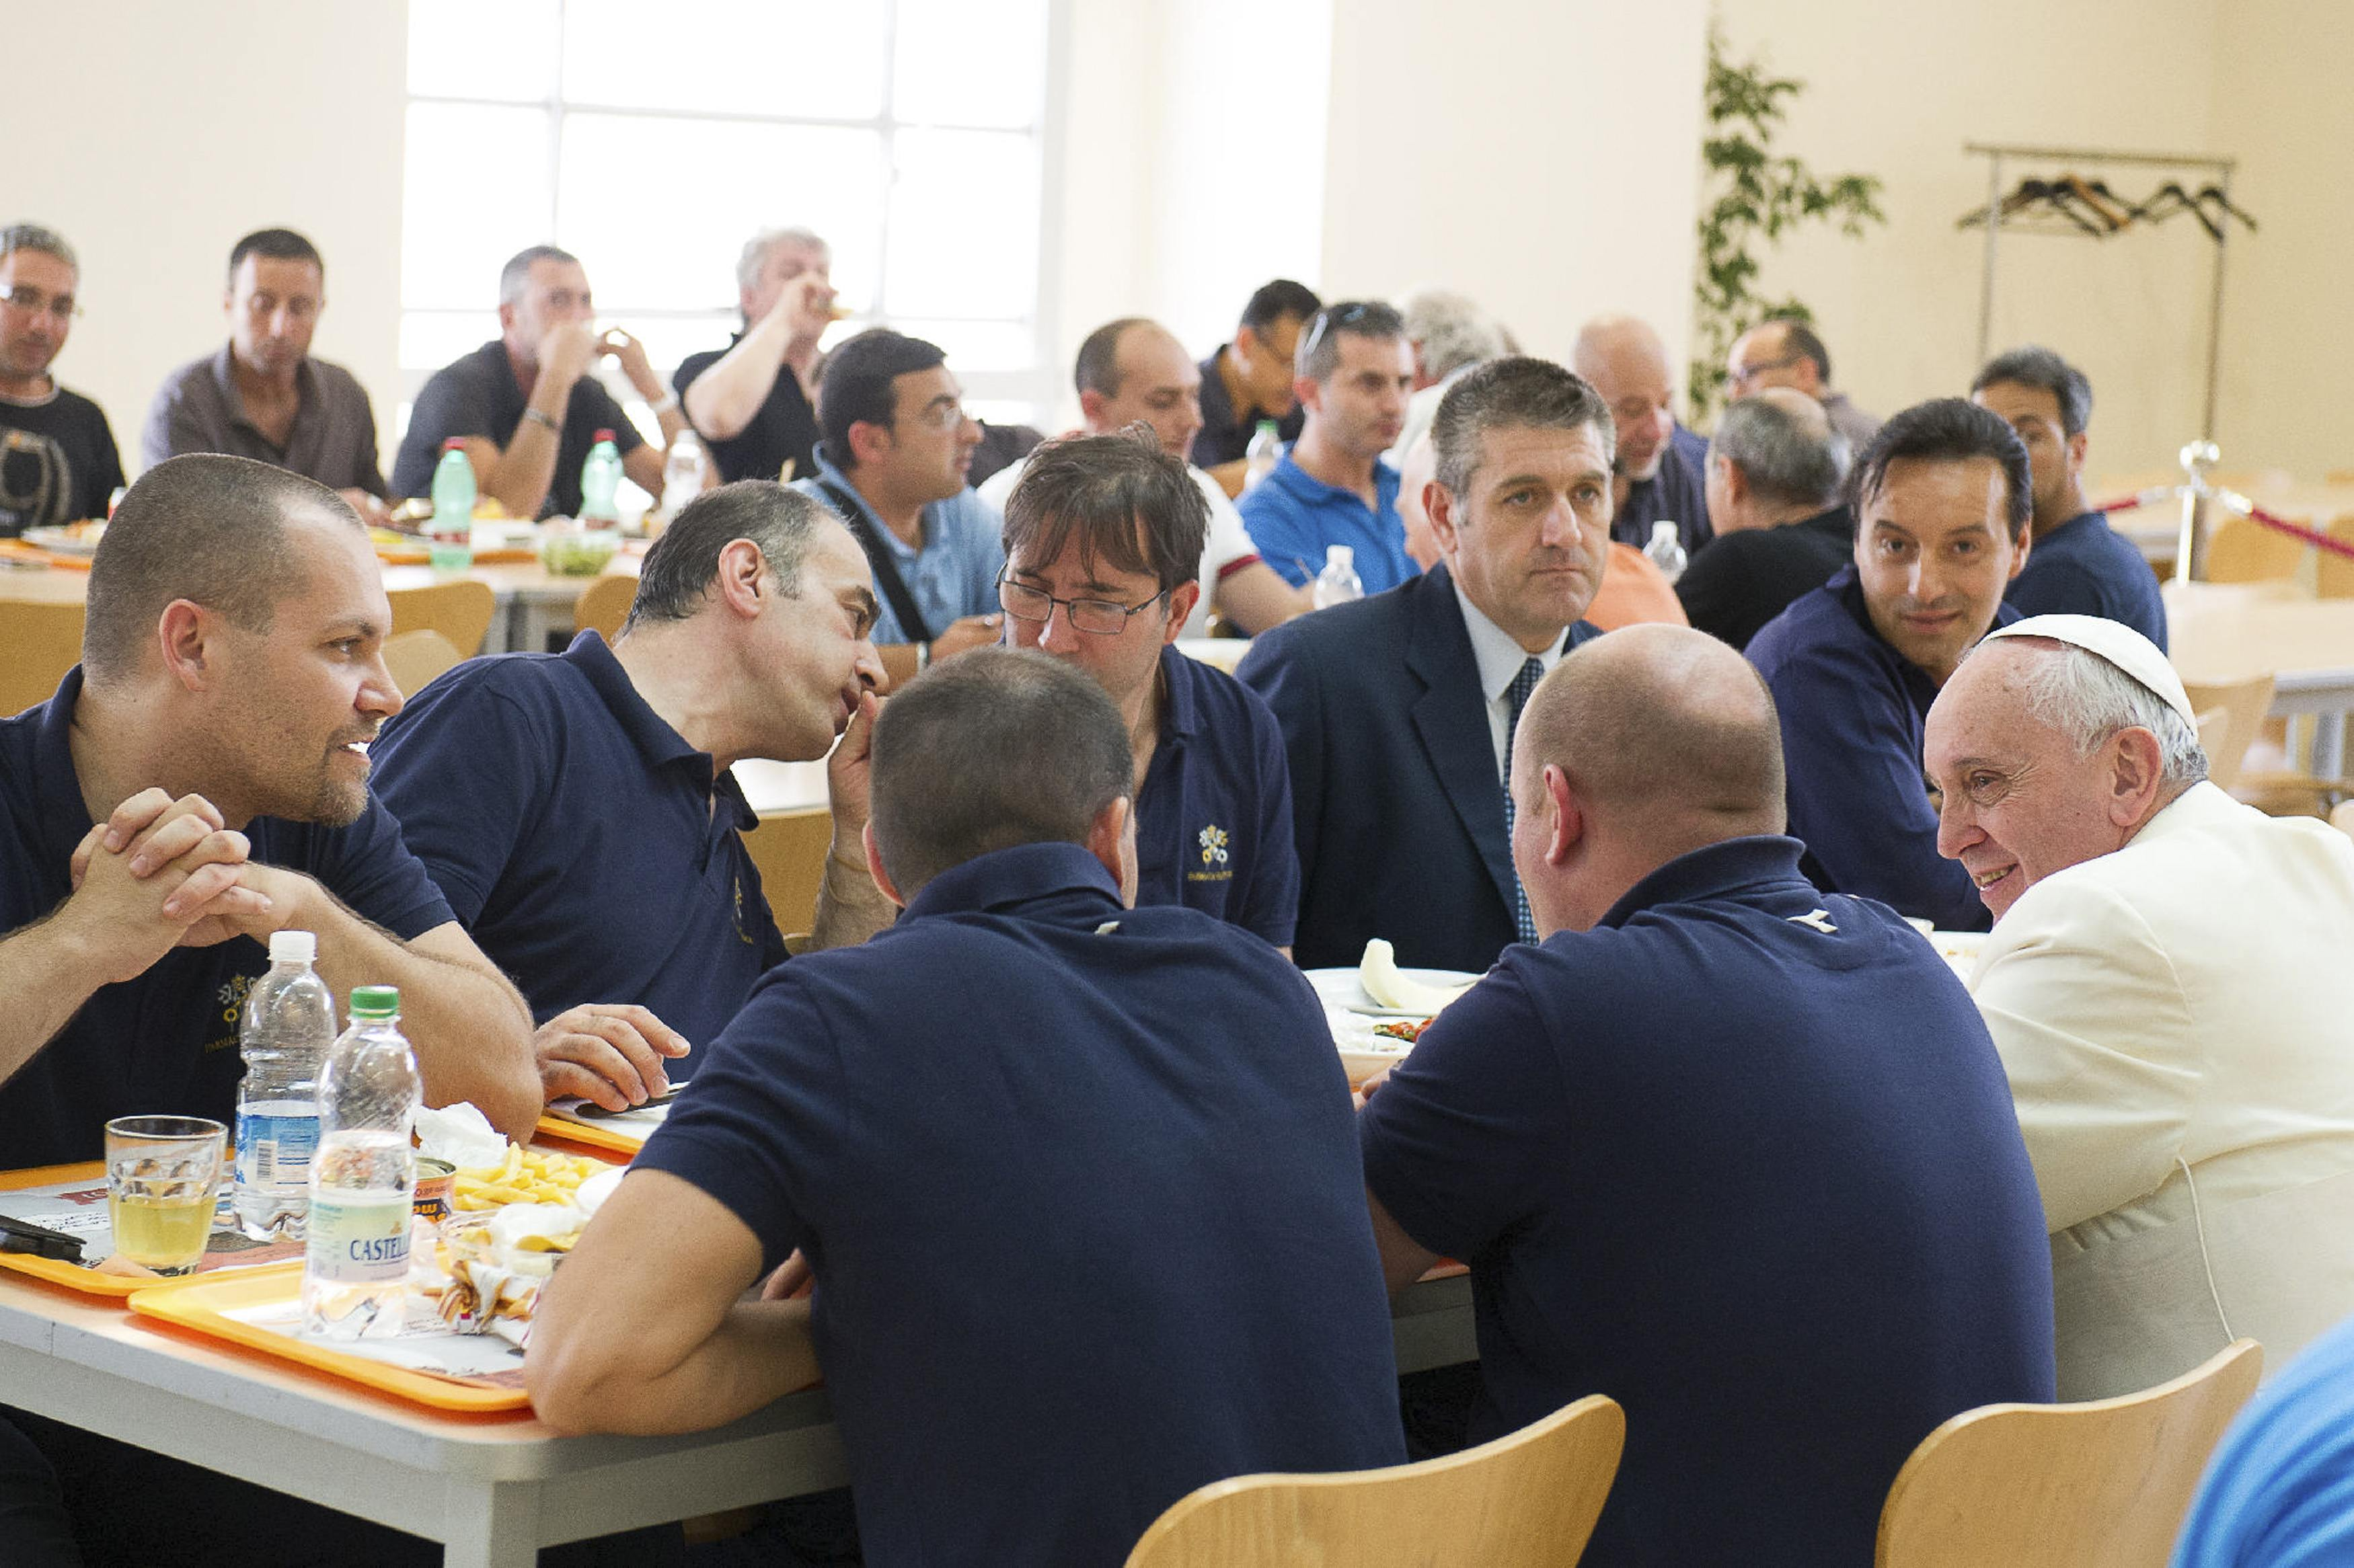 Pope Francis talks with Vatican workers during a surprise visit to the Vatican cafeteria July 25. (CNS photo/L'Osservatore Romano via Reuters) (July 25, 2014) See CAFETERIA-POPE July 25, 2014.